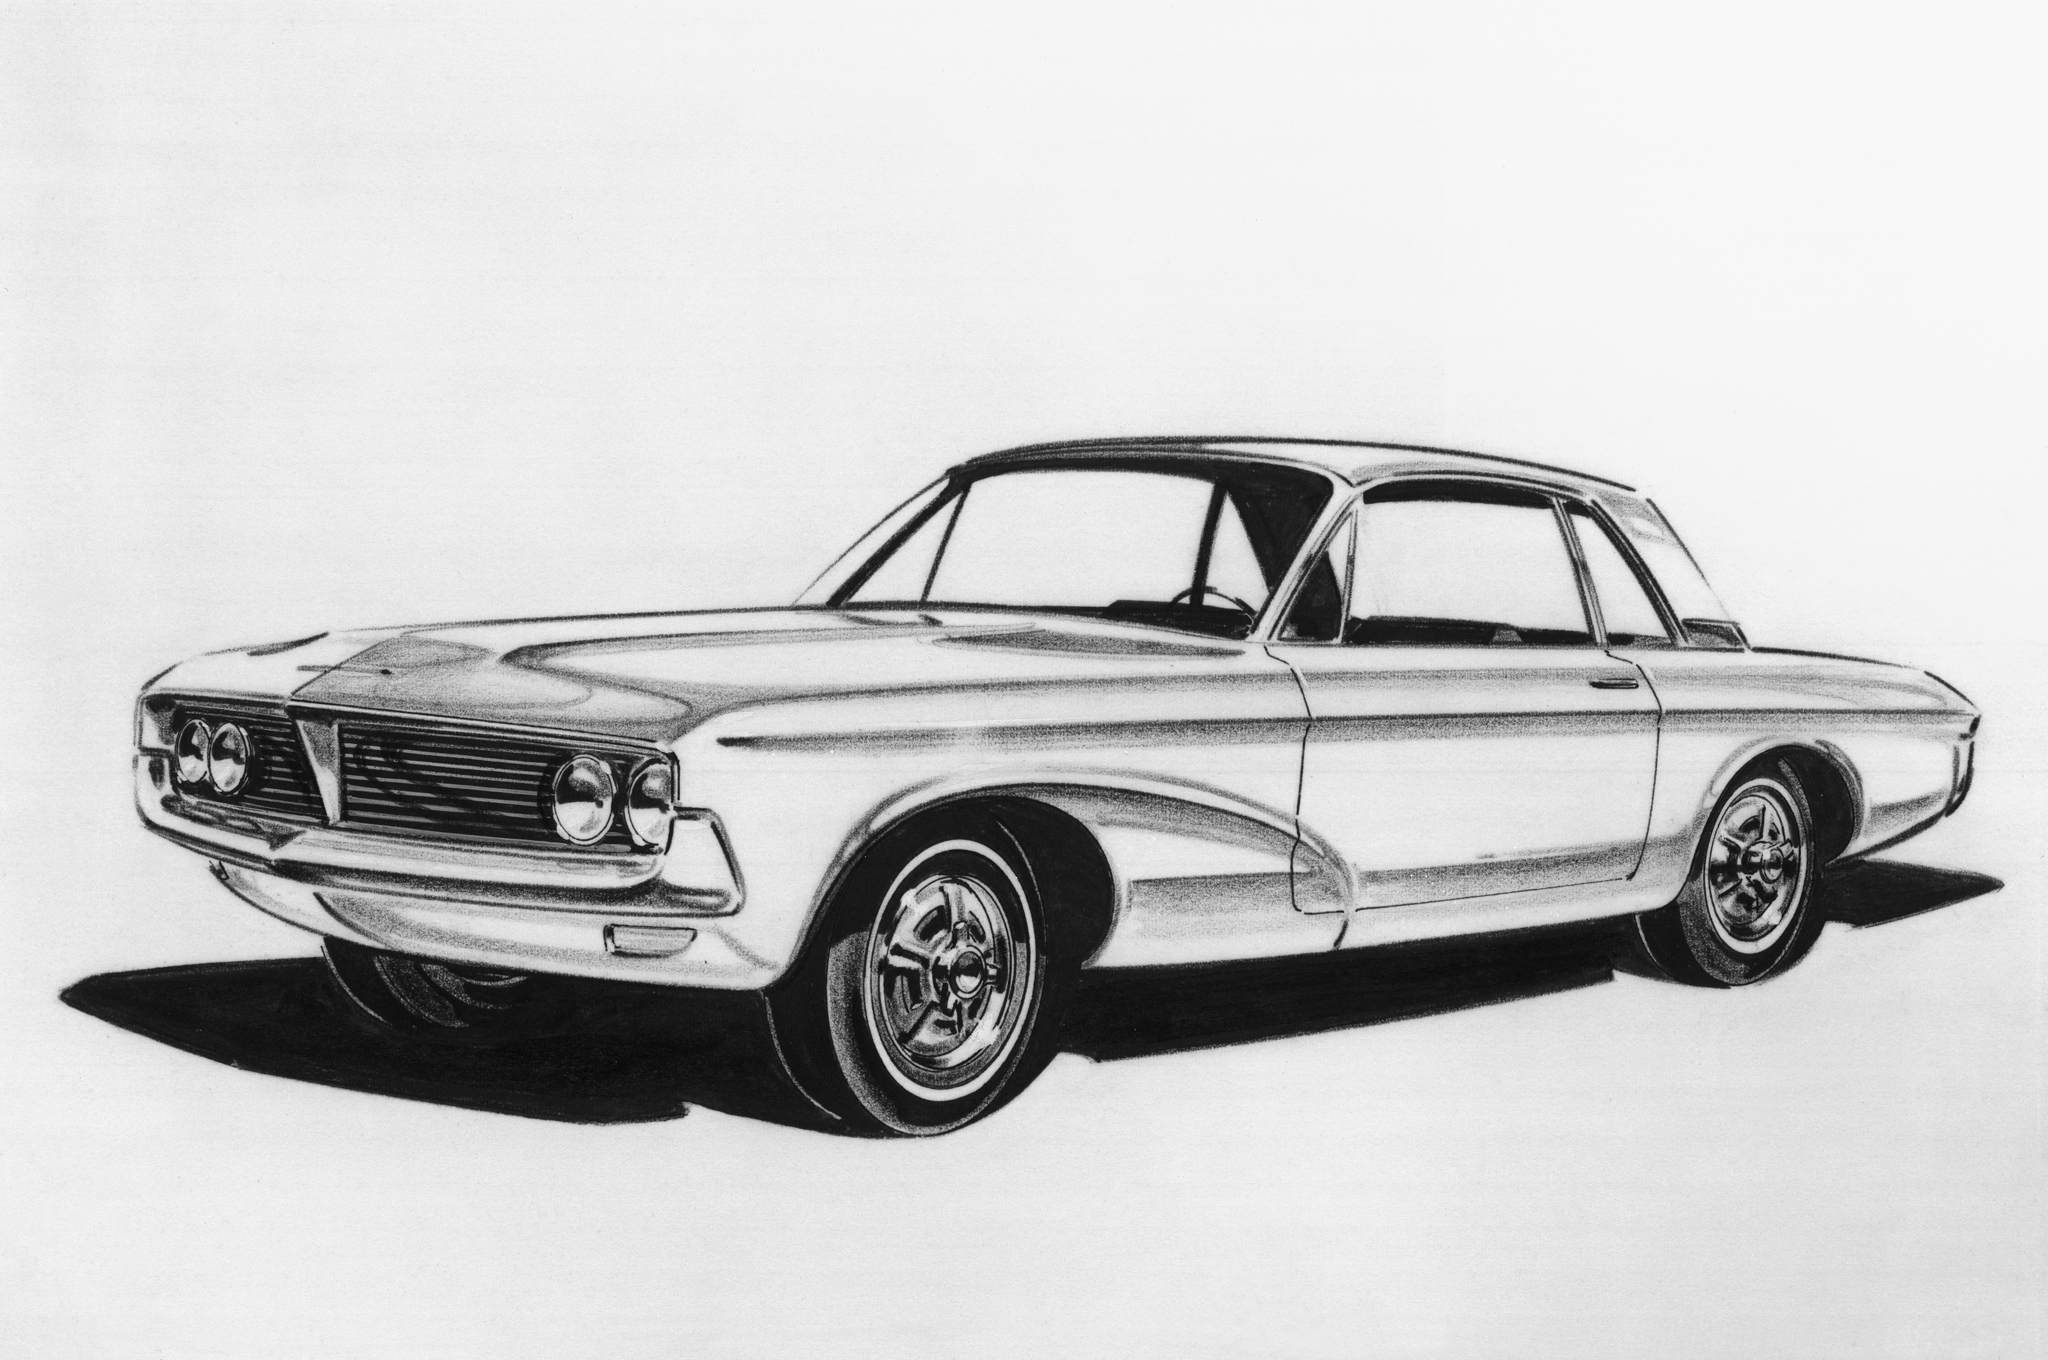 1965 Ford Mustang From Sketch To Production W Video Motor Trend